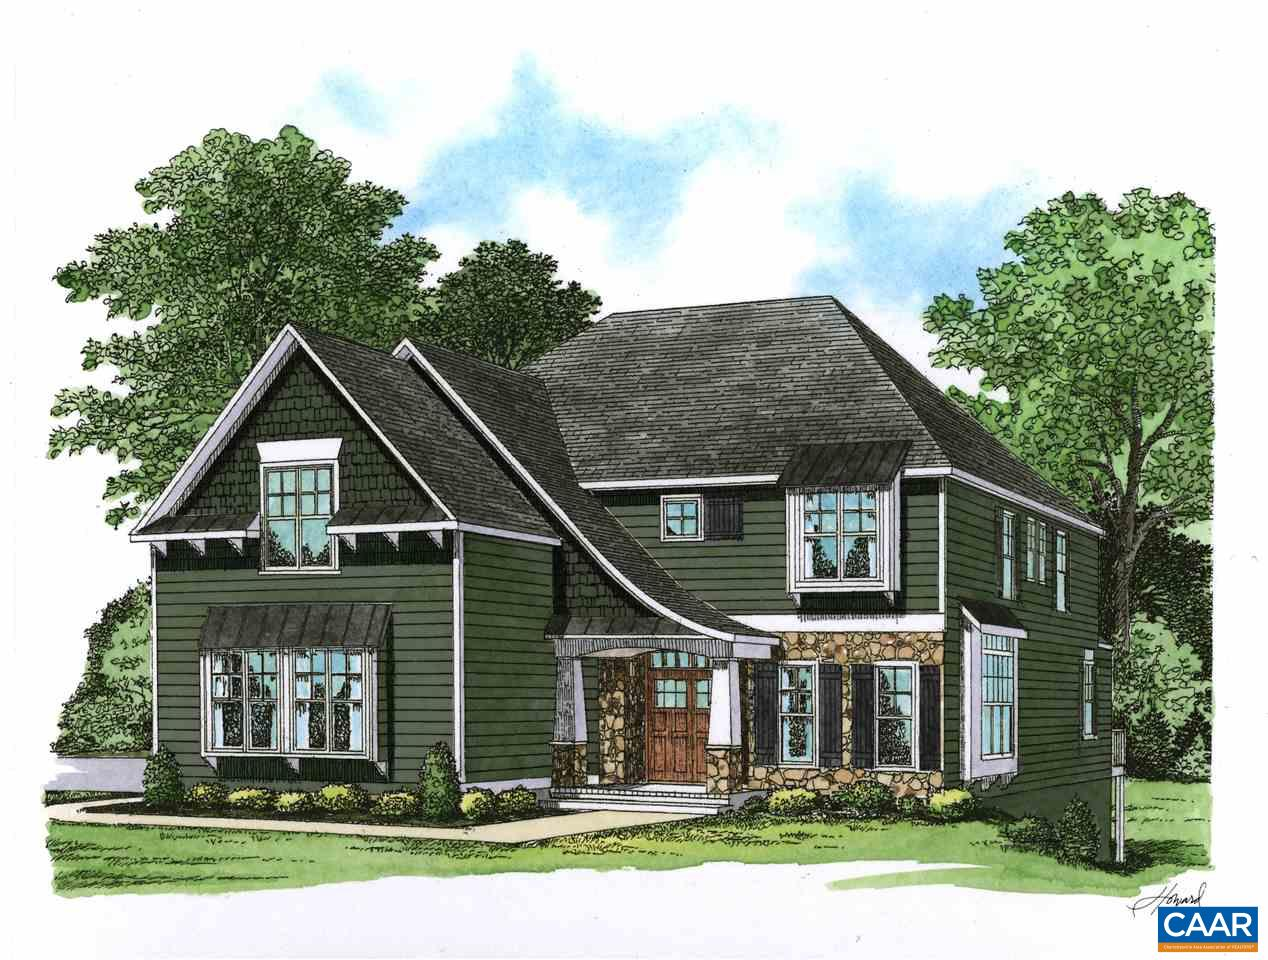 Single Family Home for Sale at 42 TRINITY WAY Crozet, Virginia 22932 United States